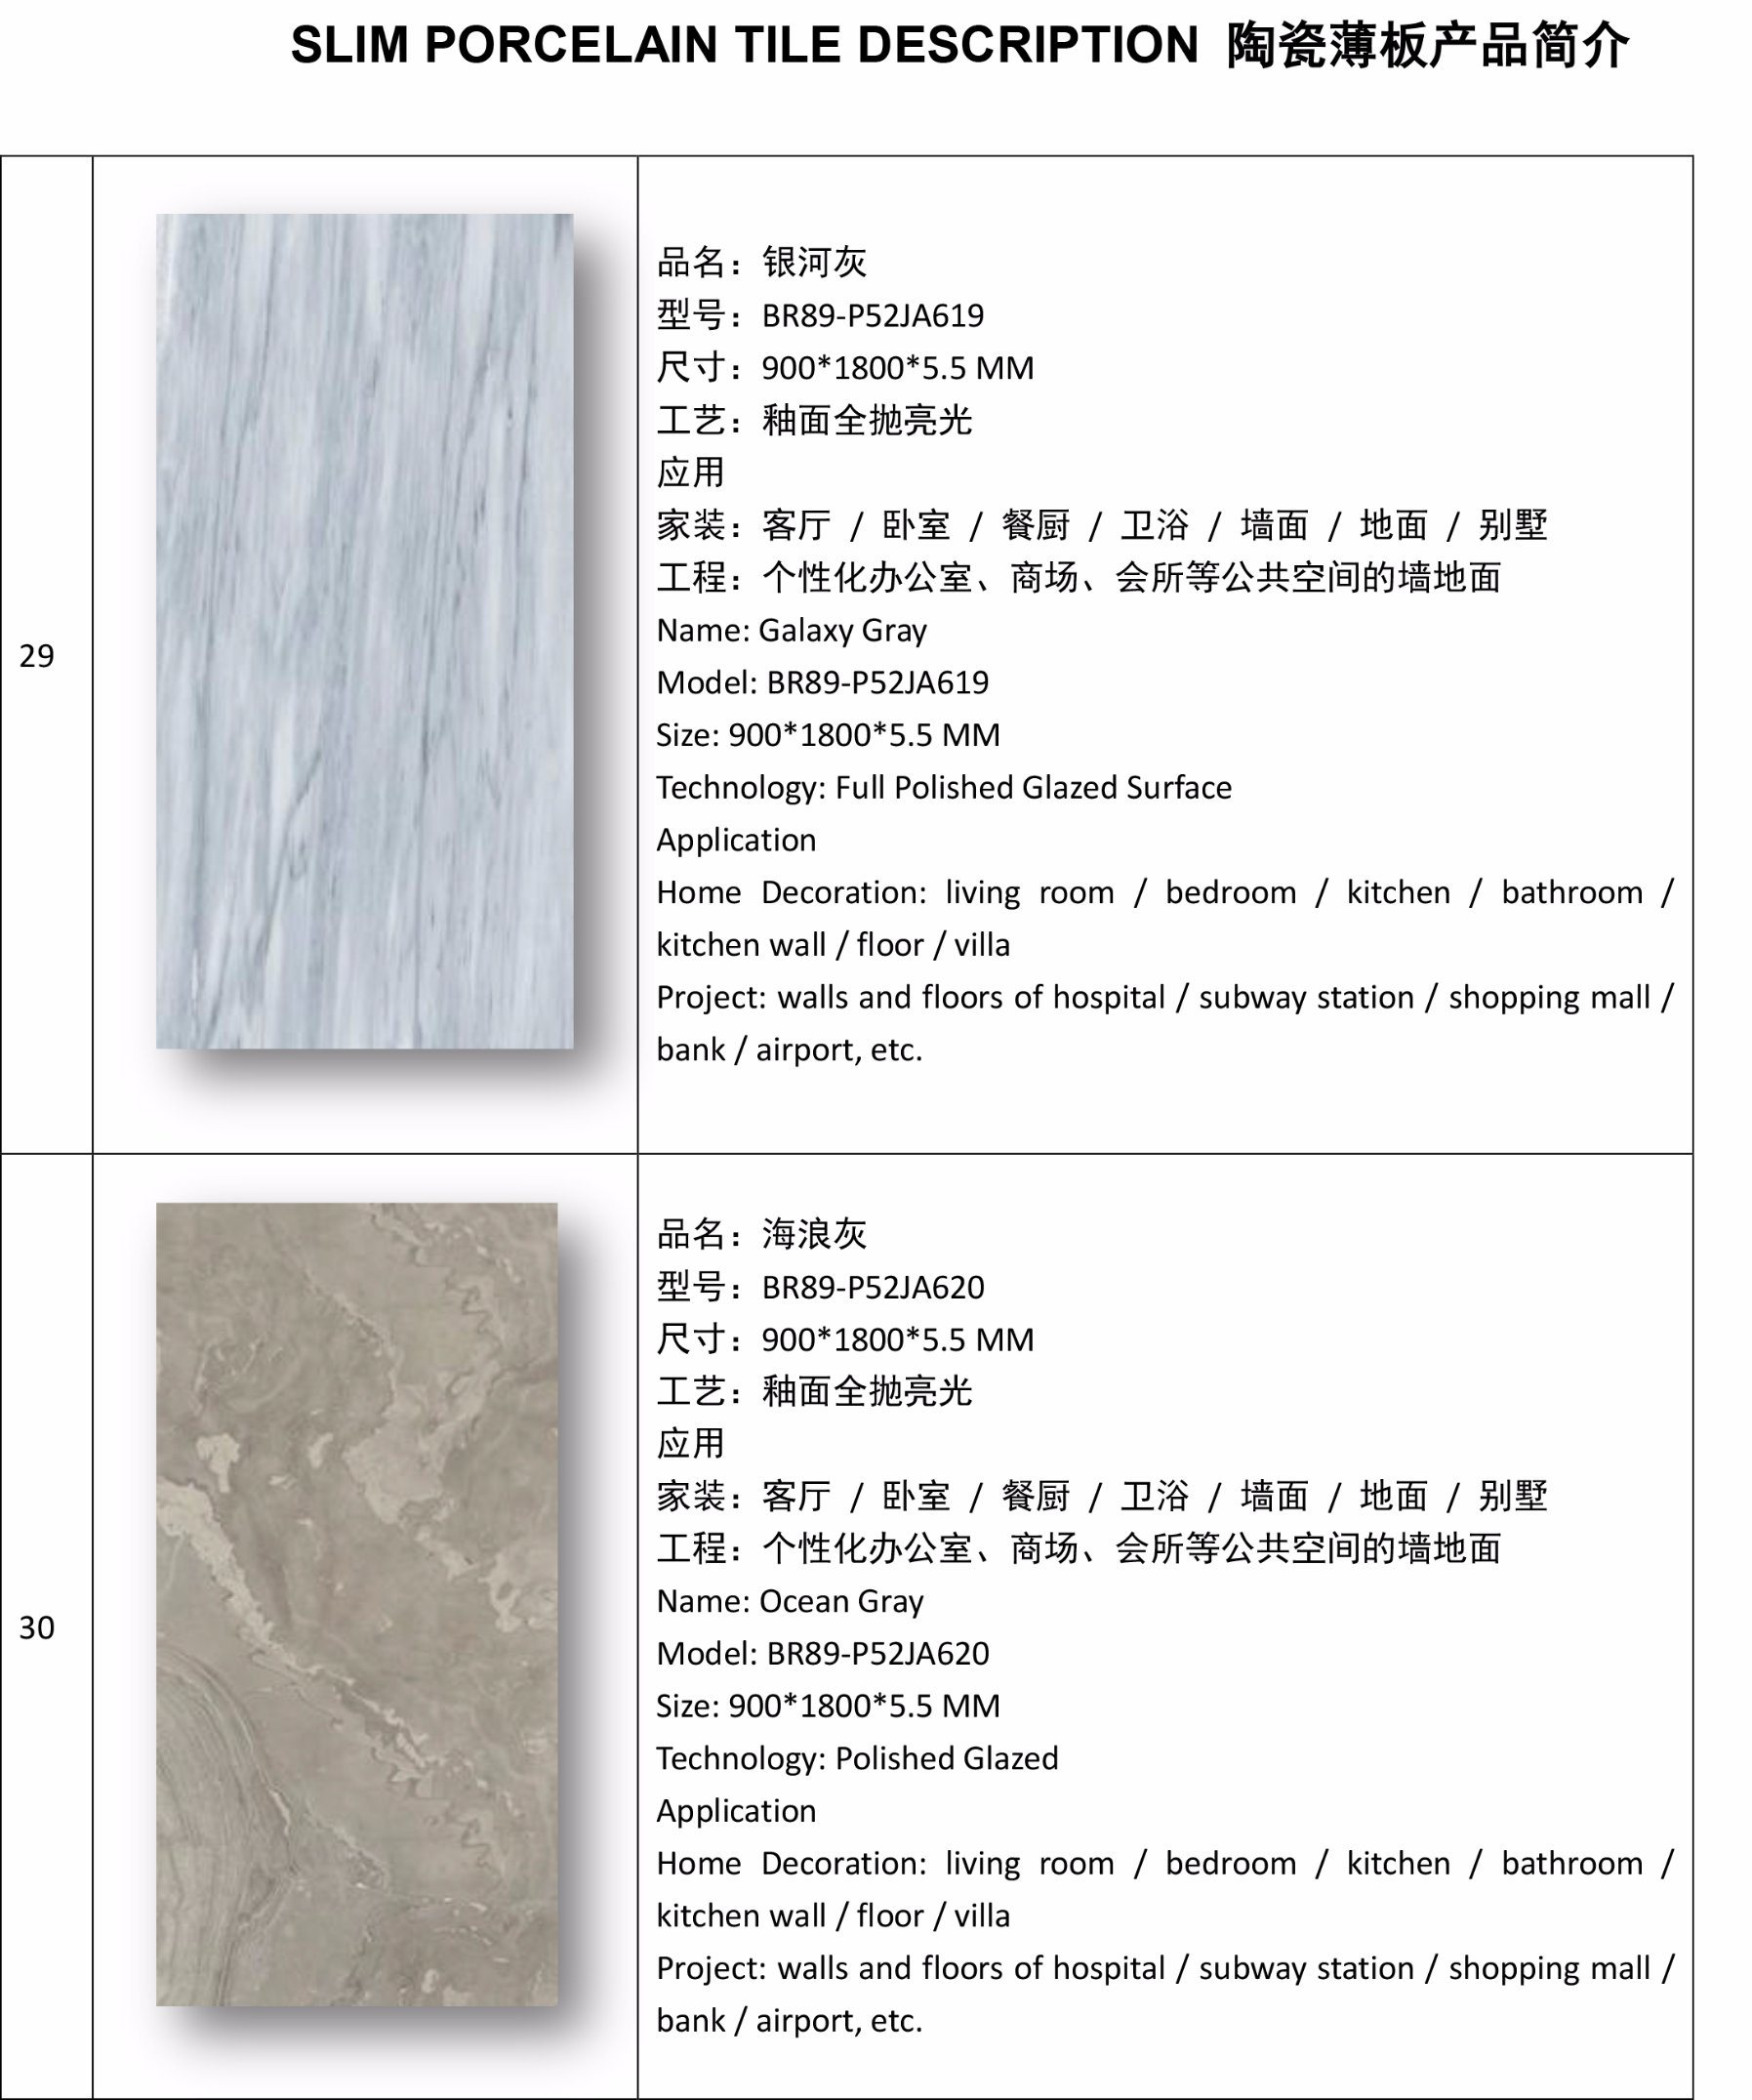 China 5.5mm Thickness Super Thin Slim Porcelain Tiles for Indoor ...